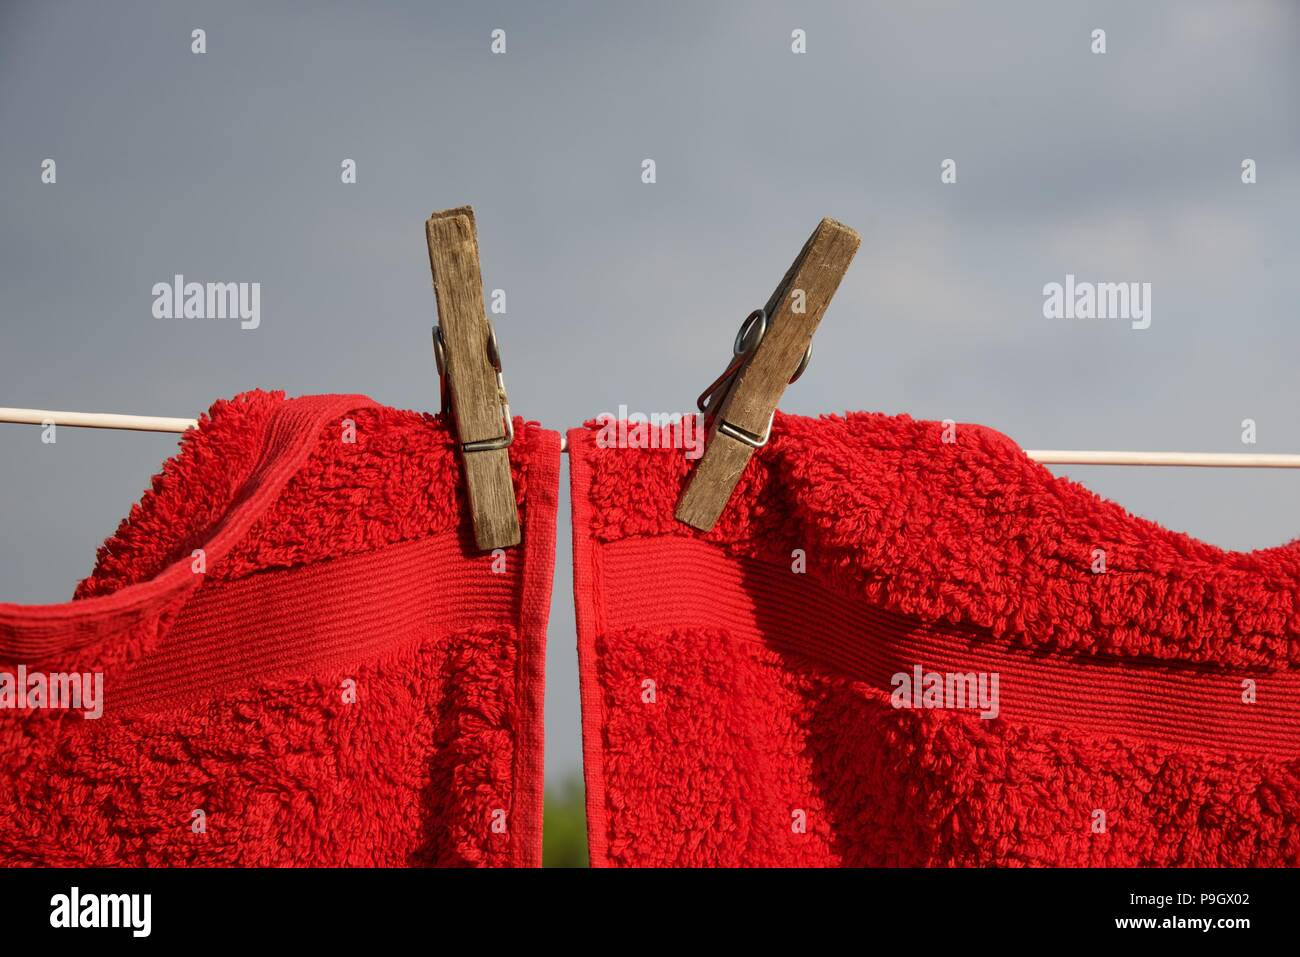 Washing line: red and grey towels hung with sprung wooden pegs on a white nylon coated washing line - Stock Image